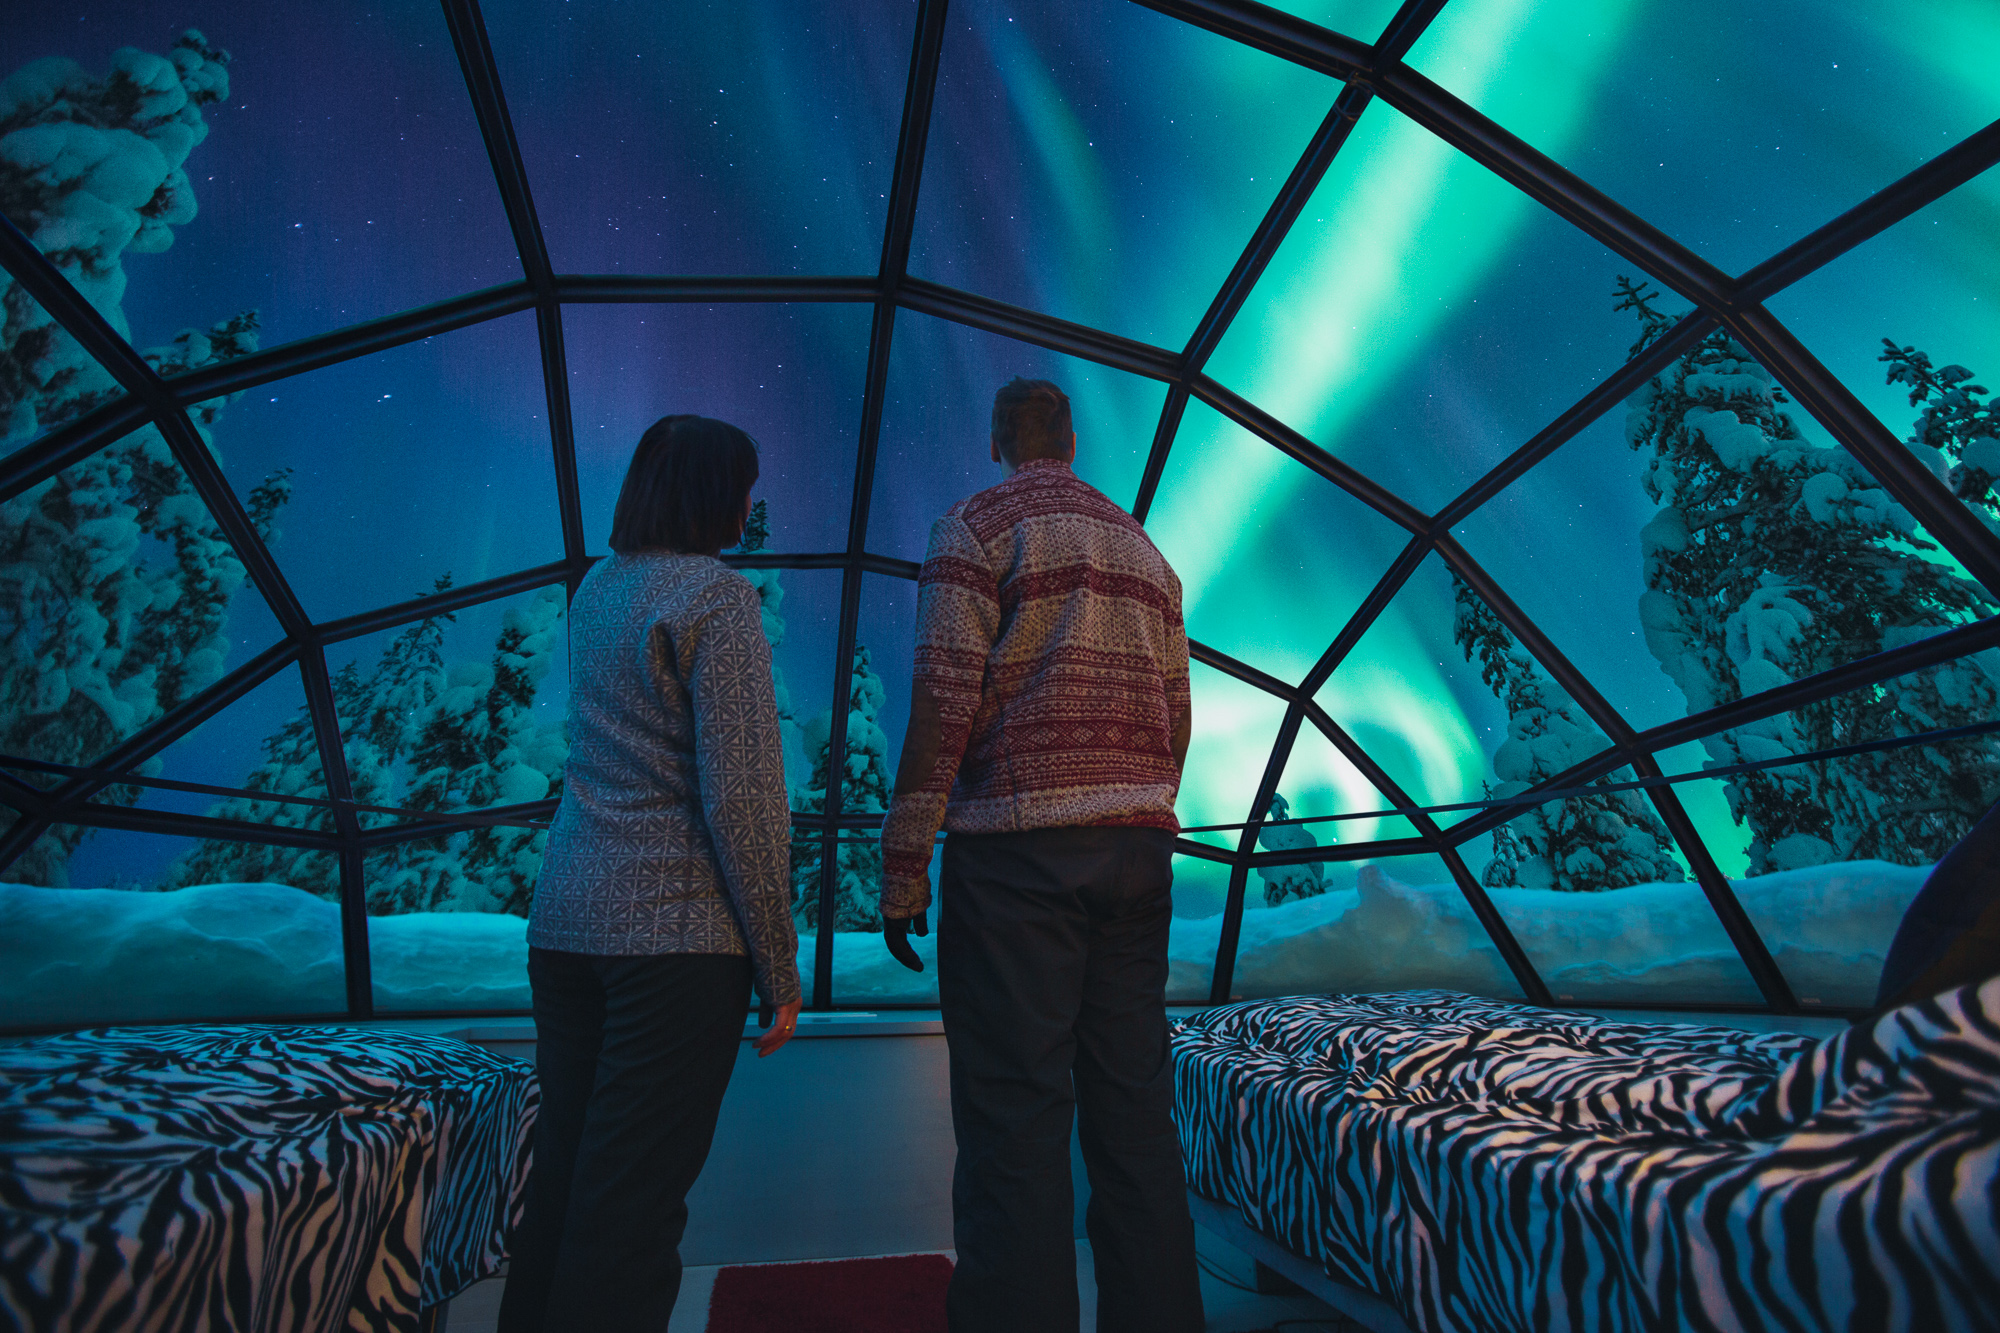 Kakslauttanen-glass-igloo-inside-Northern-Lights-1.jpg